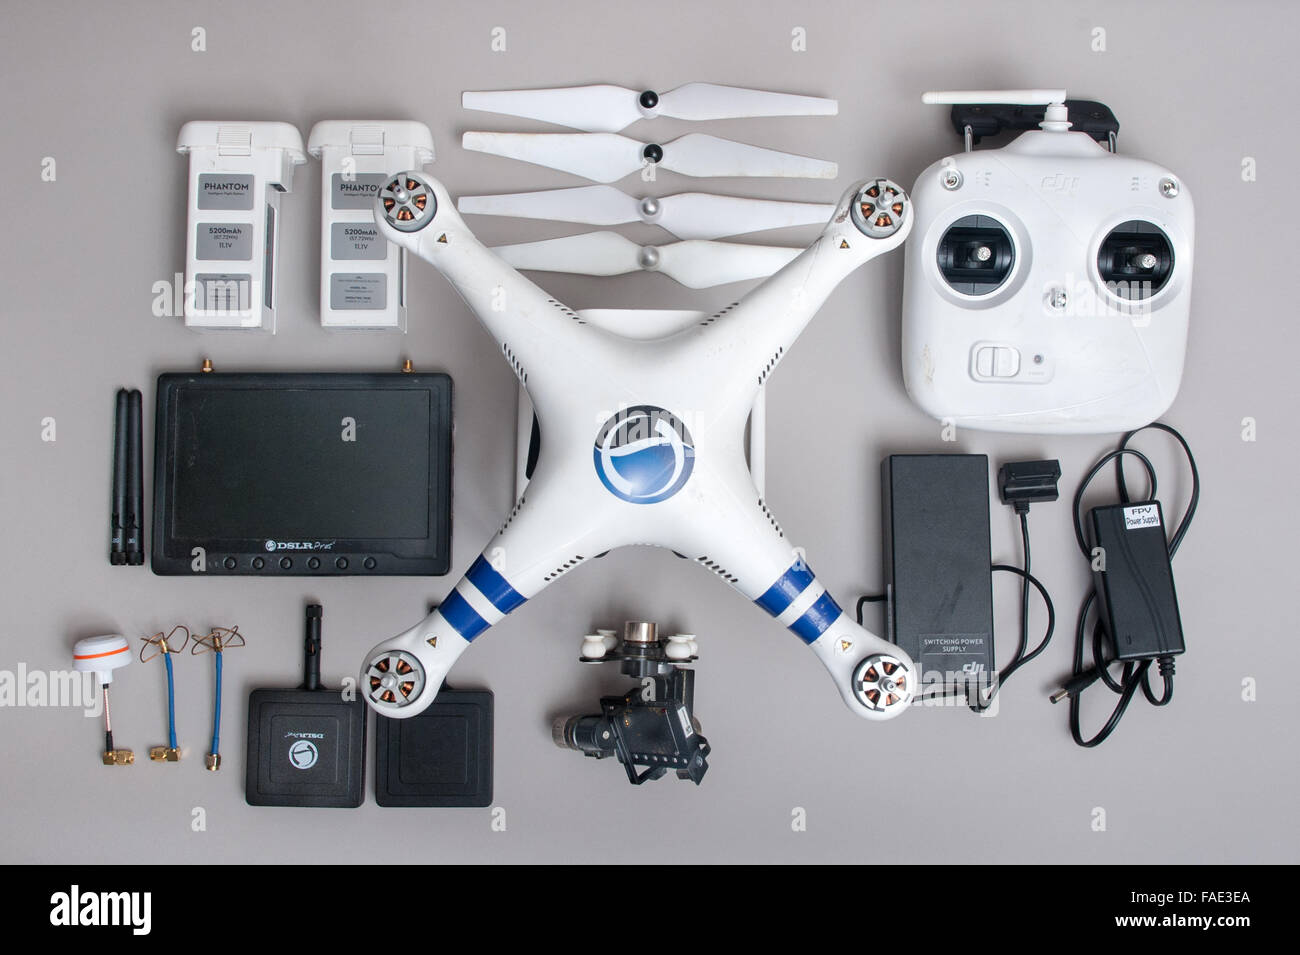 DJI Phantom 2 drone laid out on a table - Stock Image